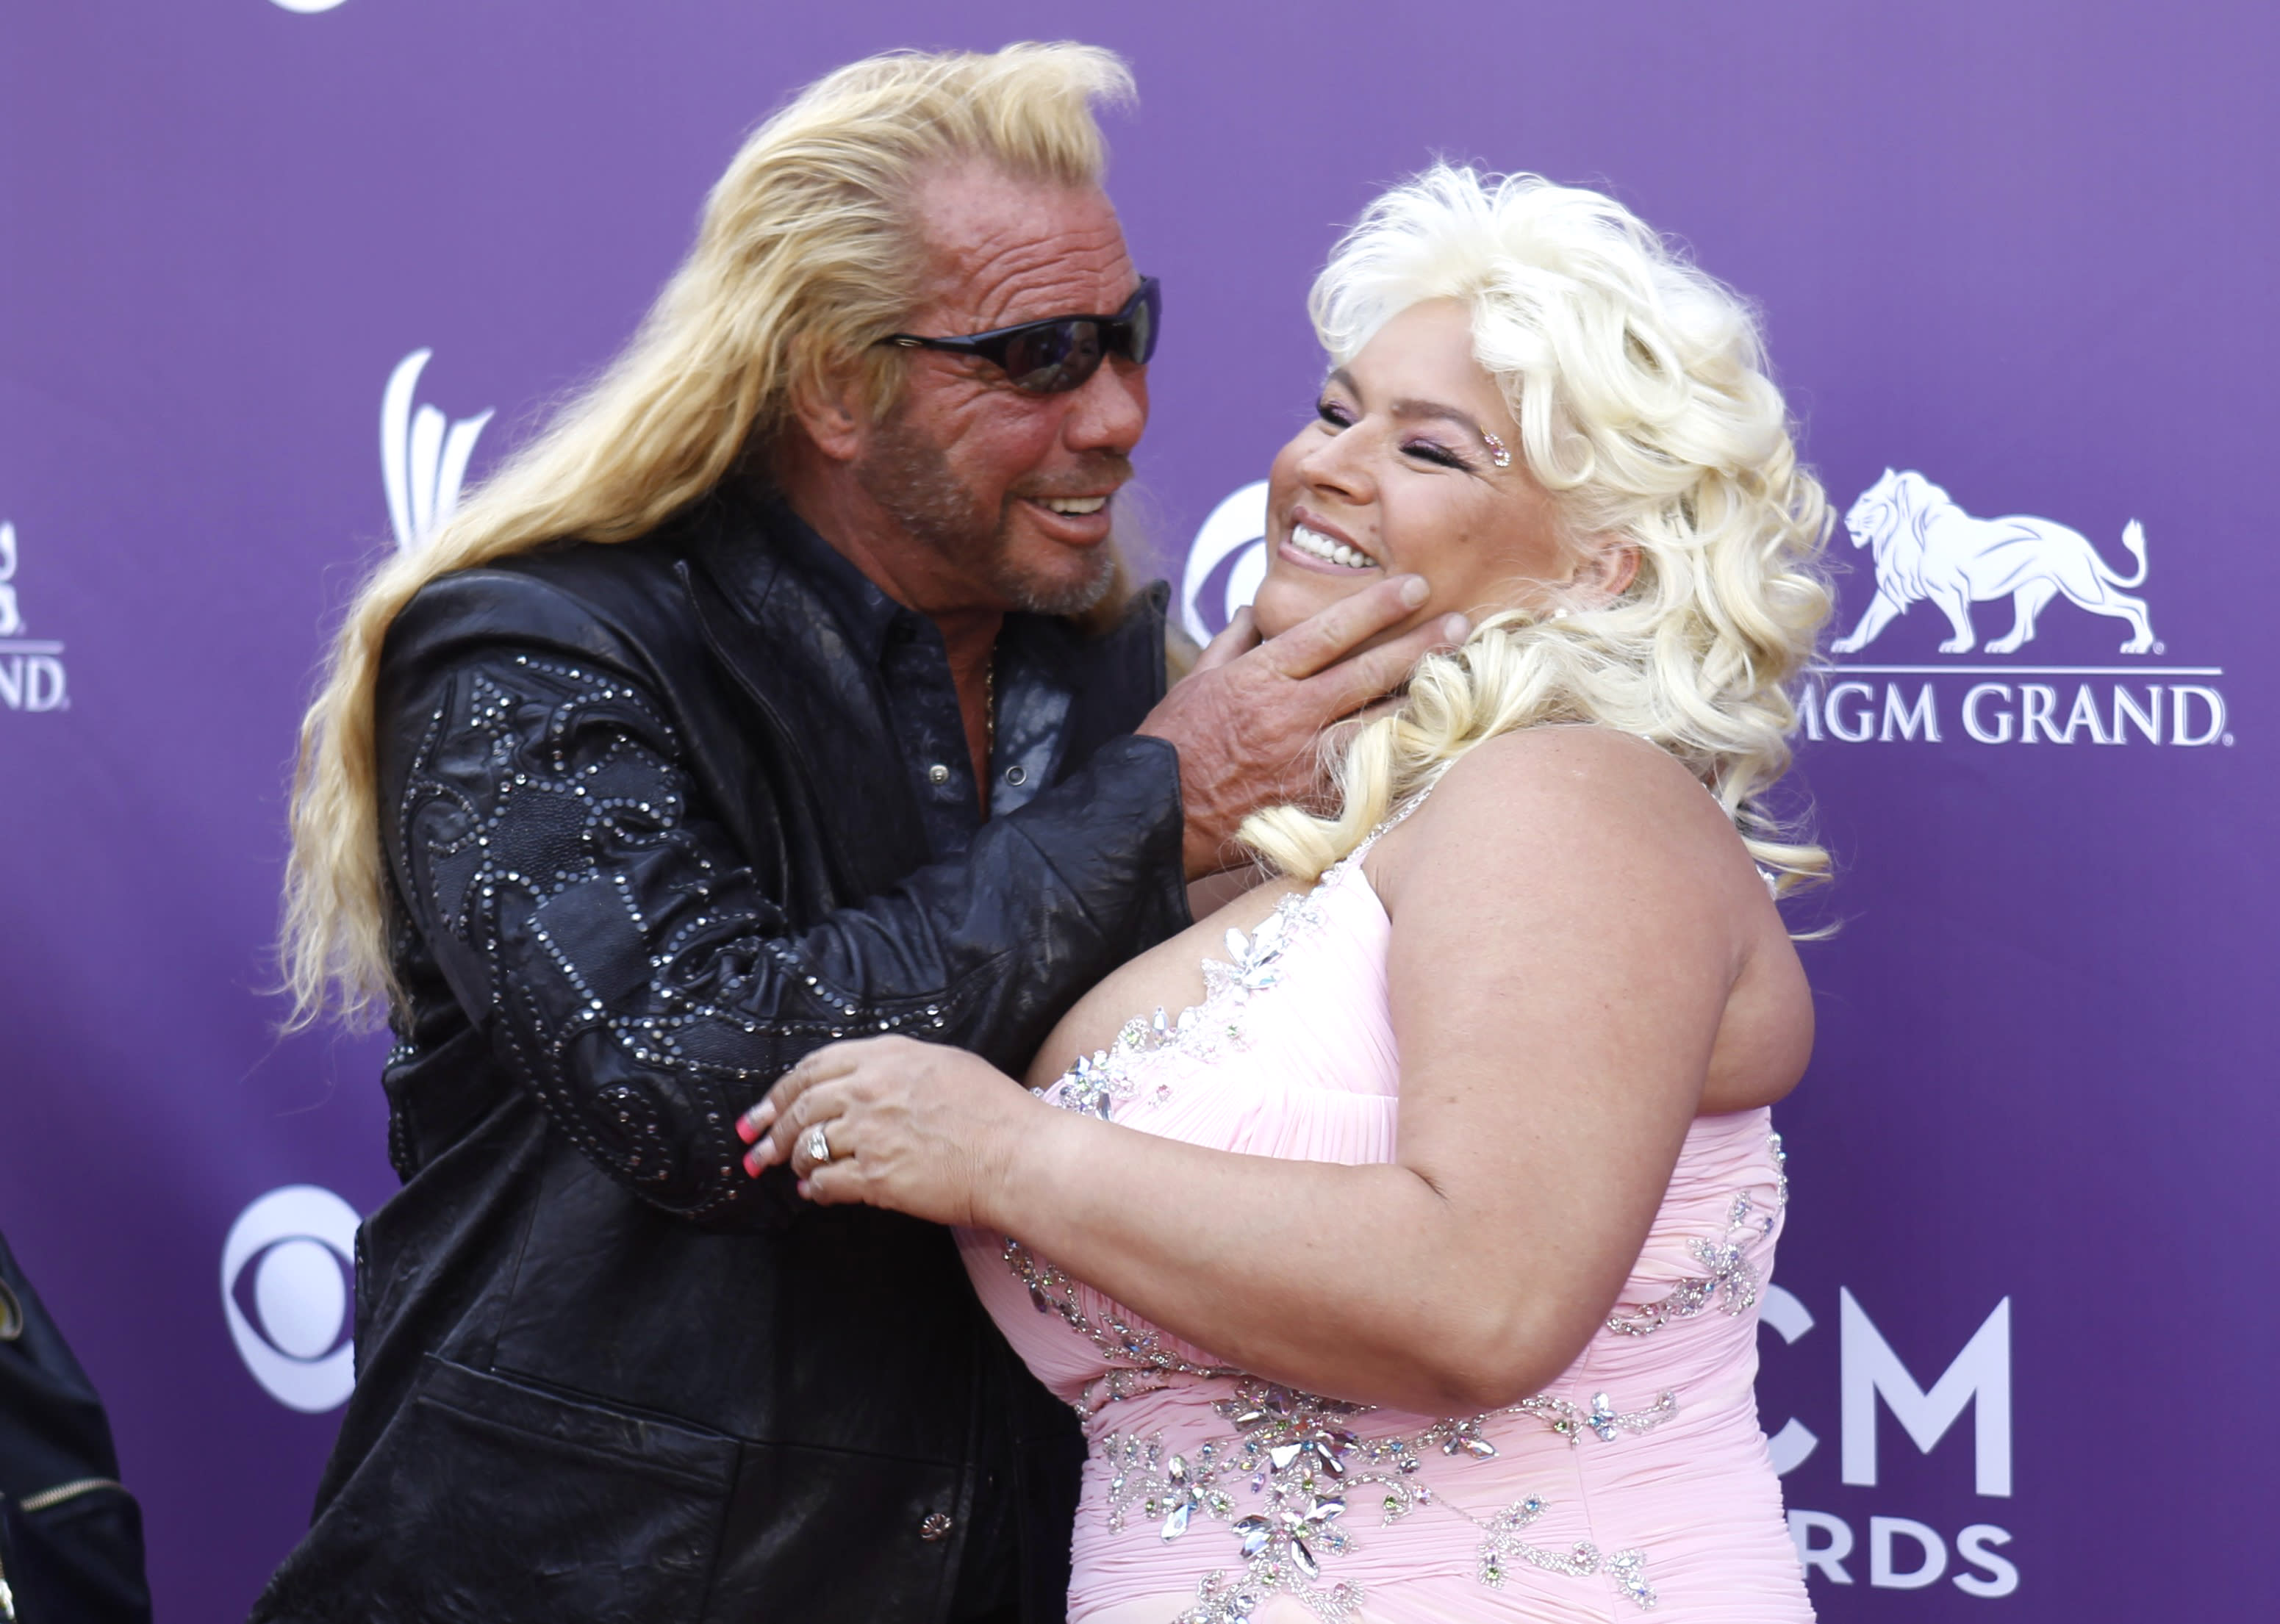 Duane Chapman on his future: It's 'a lot harder now without Beth'